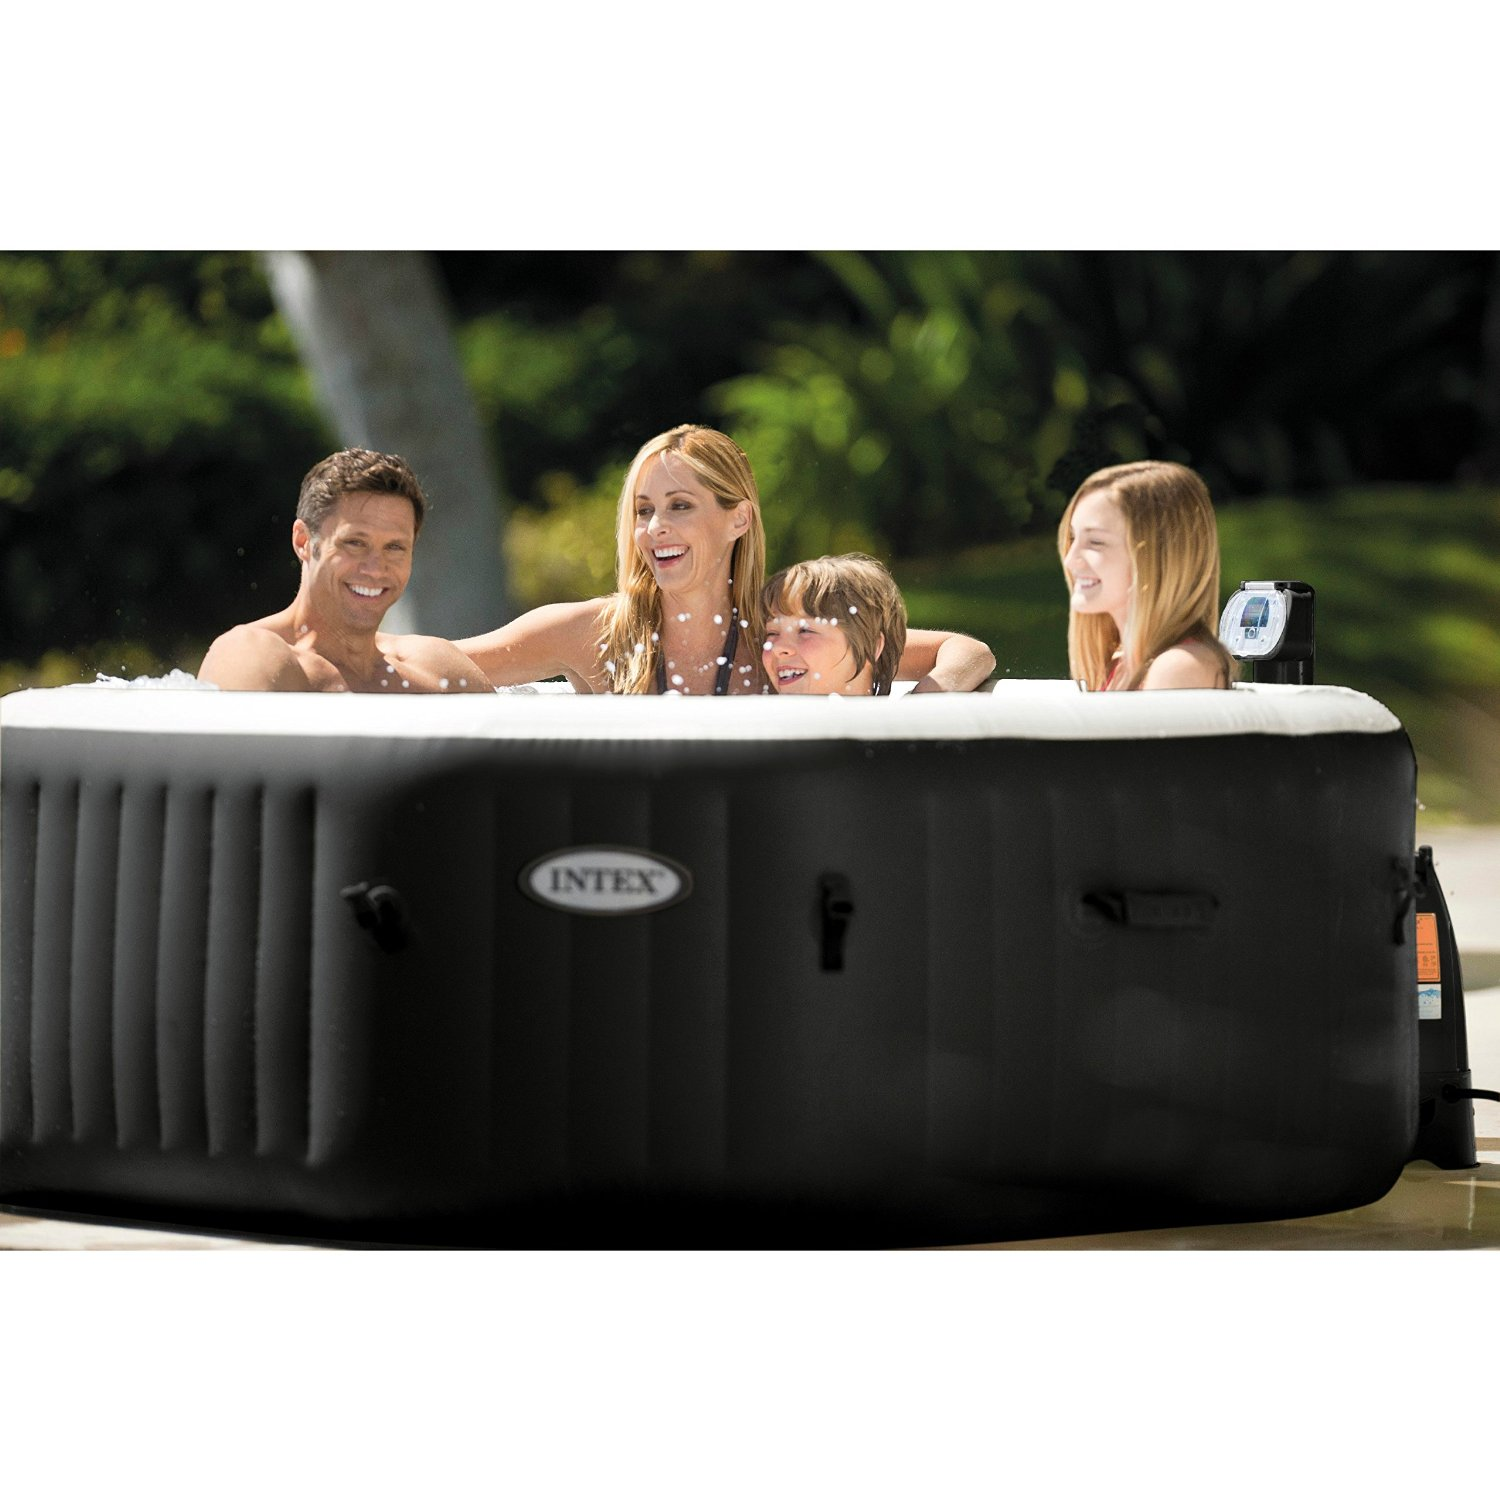 Intex PureSpa Jet and Bubble Deluxe Portable Hot Tub Review – Laze Up!